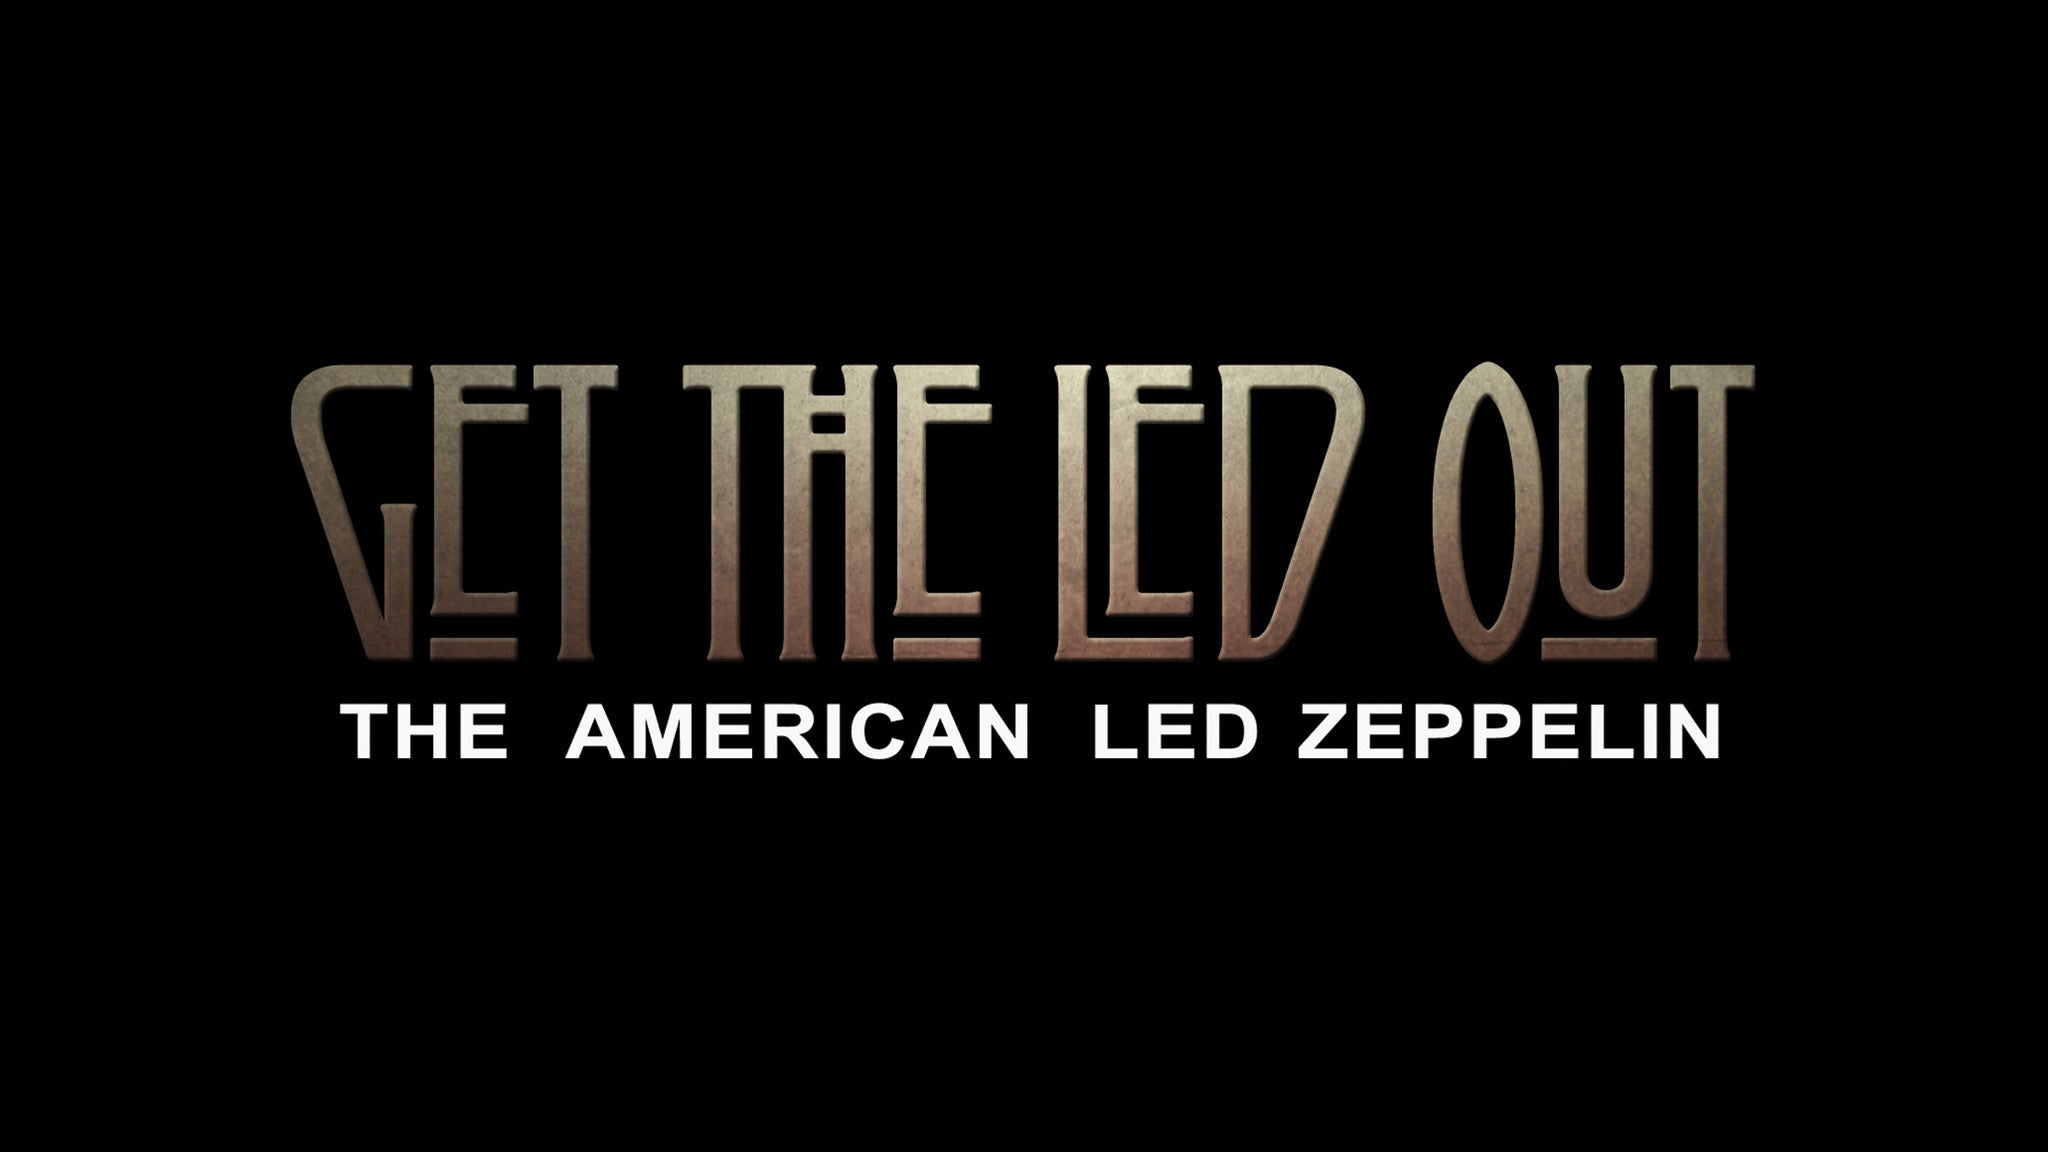 Get the Led Out at Emens Auditorium